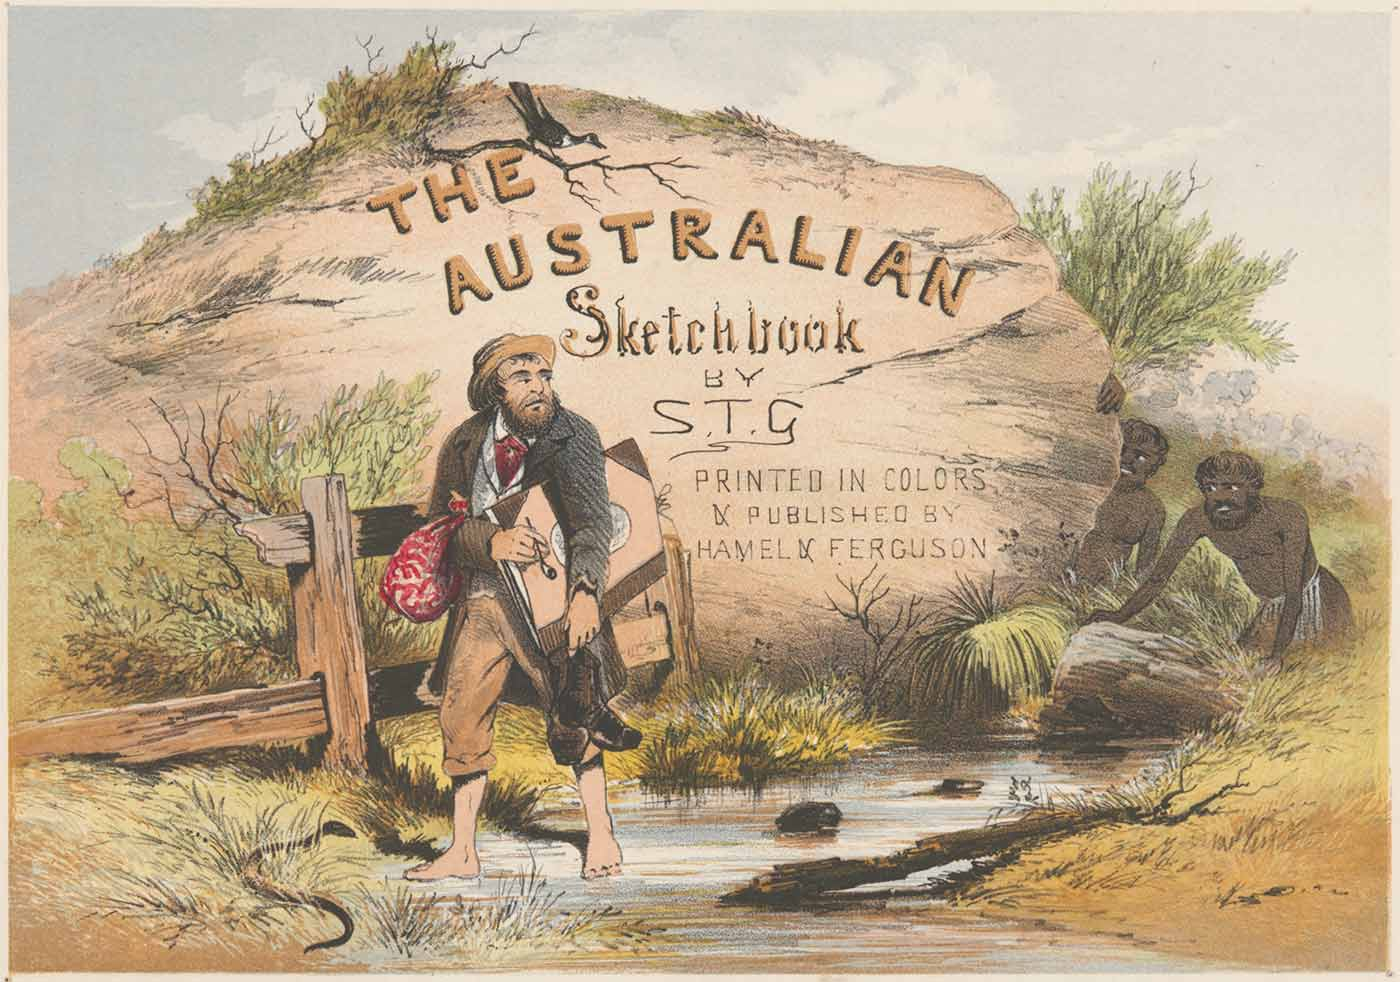 Title page featuring the text 'The Australian Sketchbook by S.T.G'. A bearded man in period clothing is walking barefoot and carrying his shoes and a large book. He is looking back over his shoulder at two men who are hiding behind a large rock. - click to view larger image